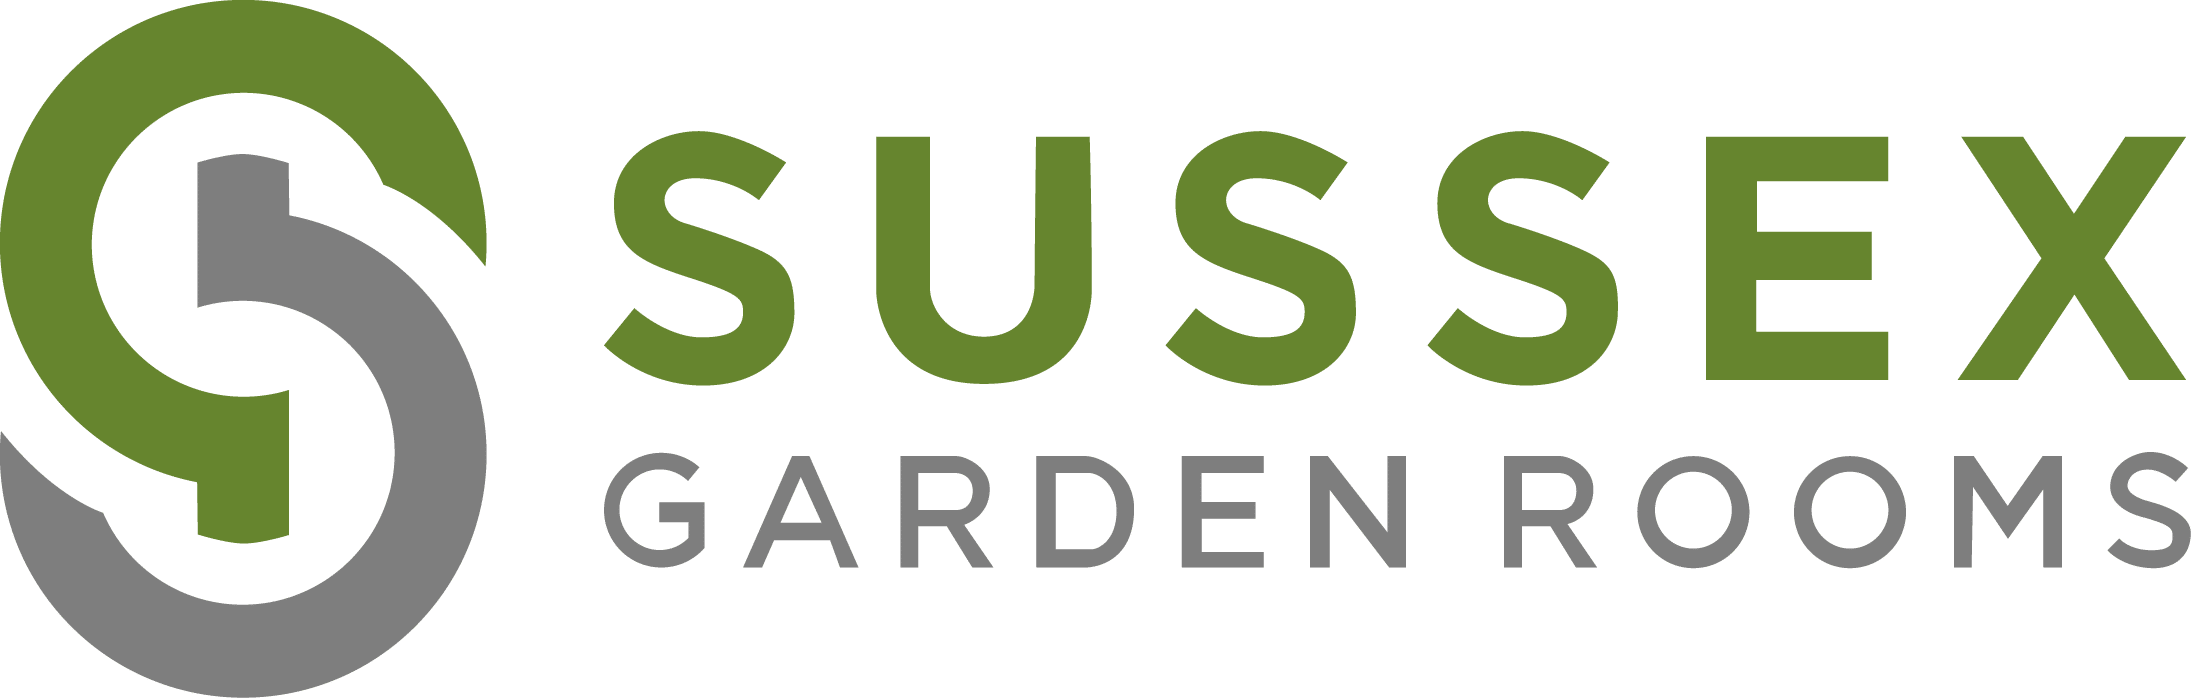 Sussex Garden Rooms